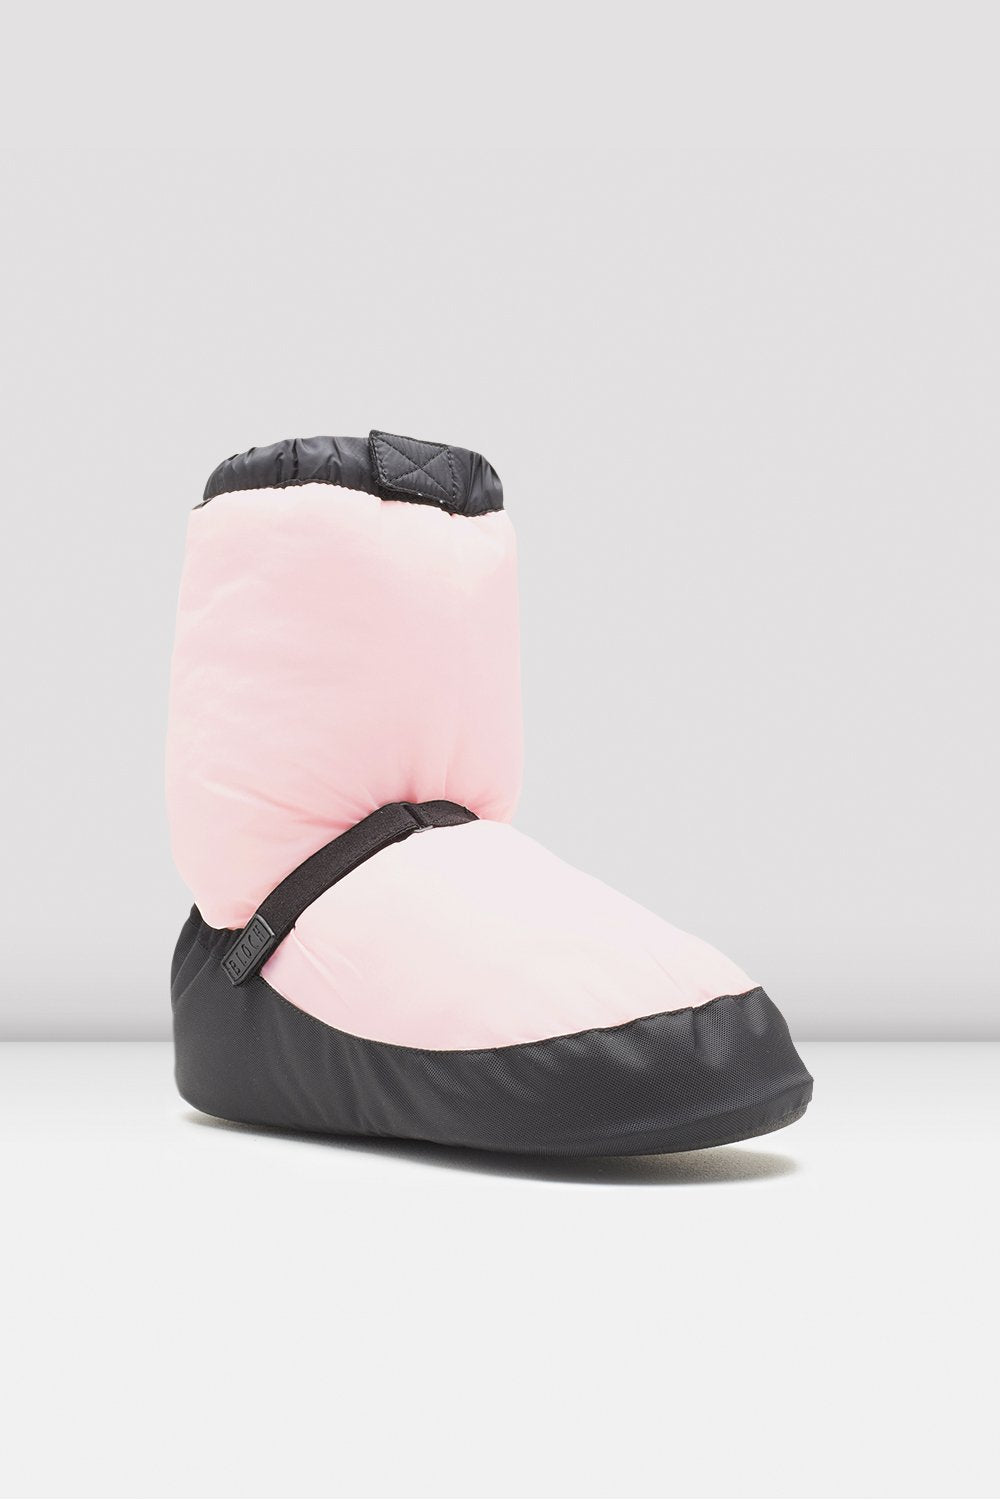 Candy pink nylon Bloch Adult Warm Up Booties single shoe side view focus on toe of shoe